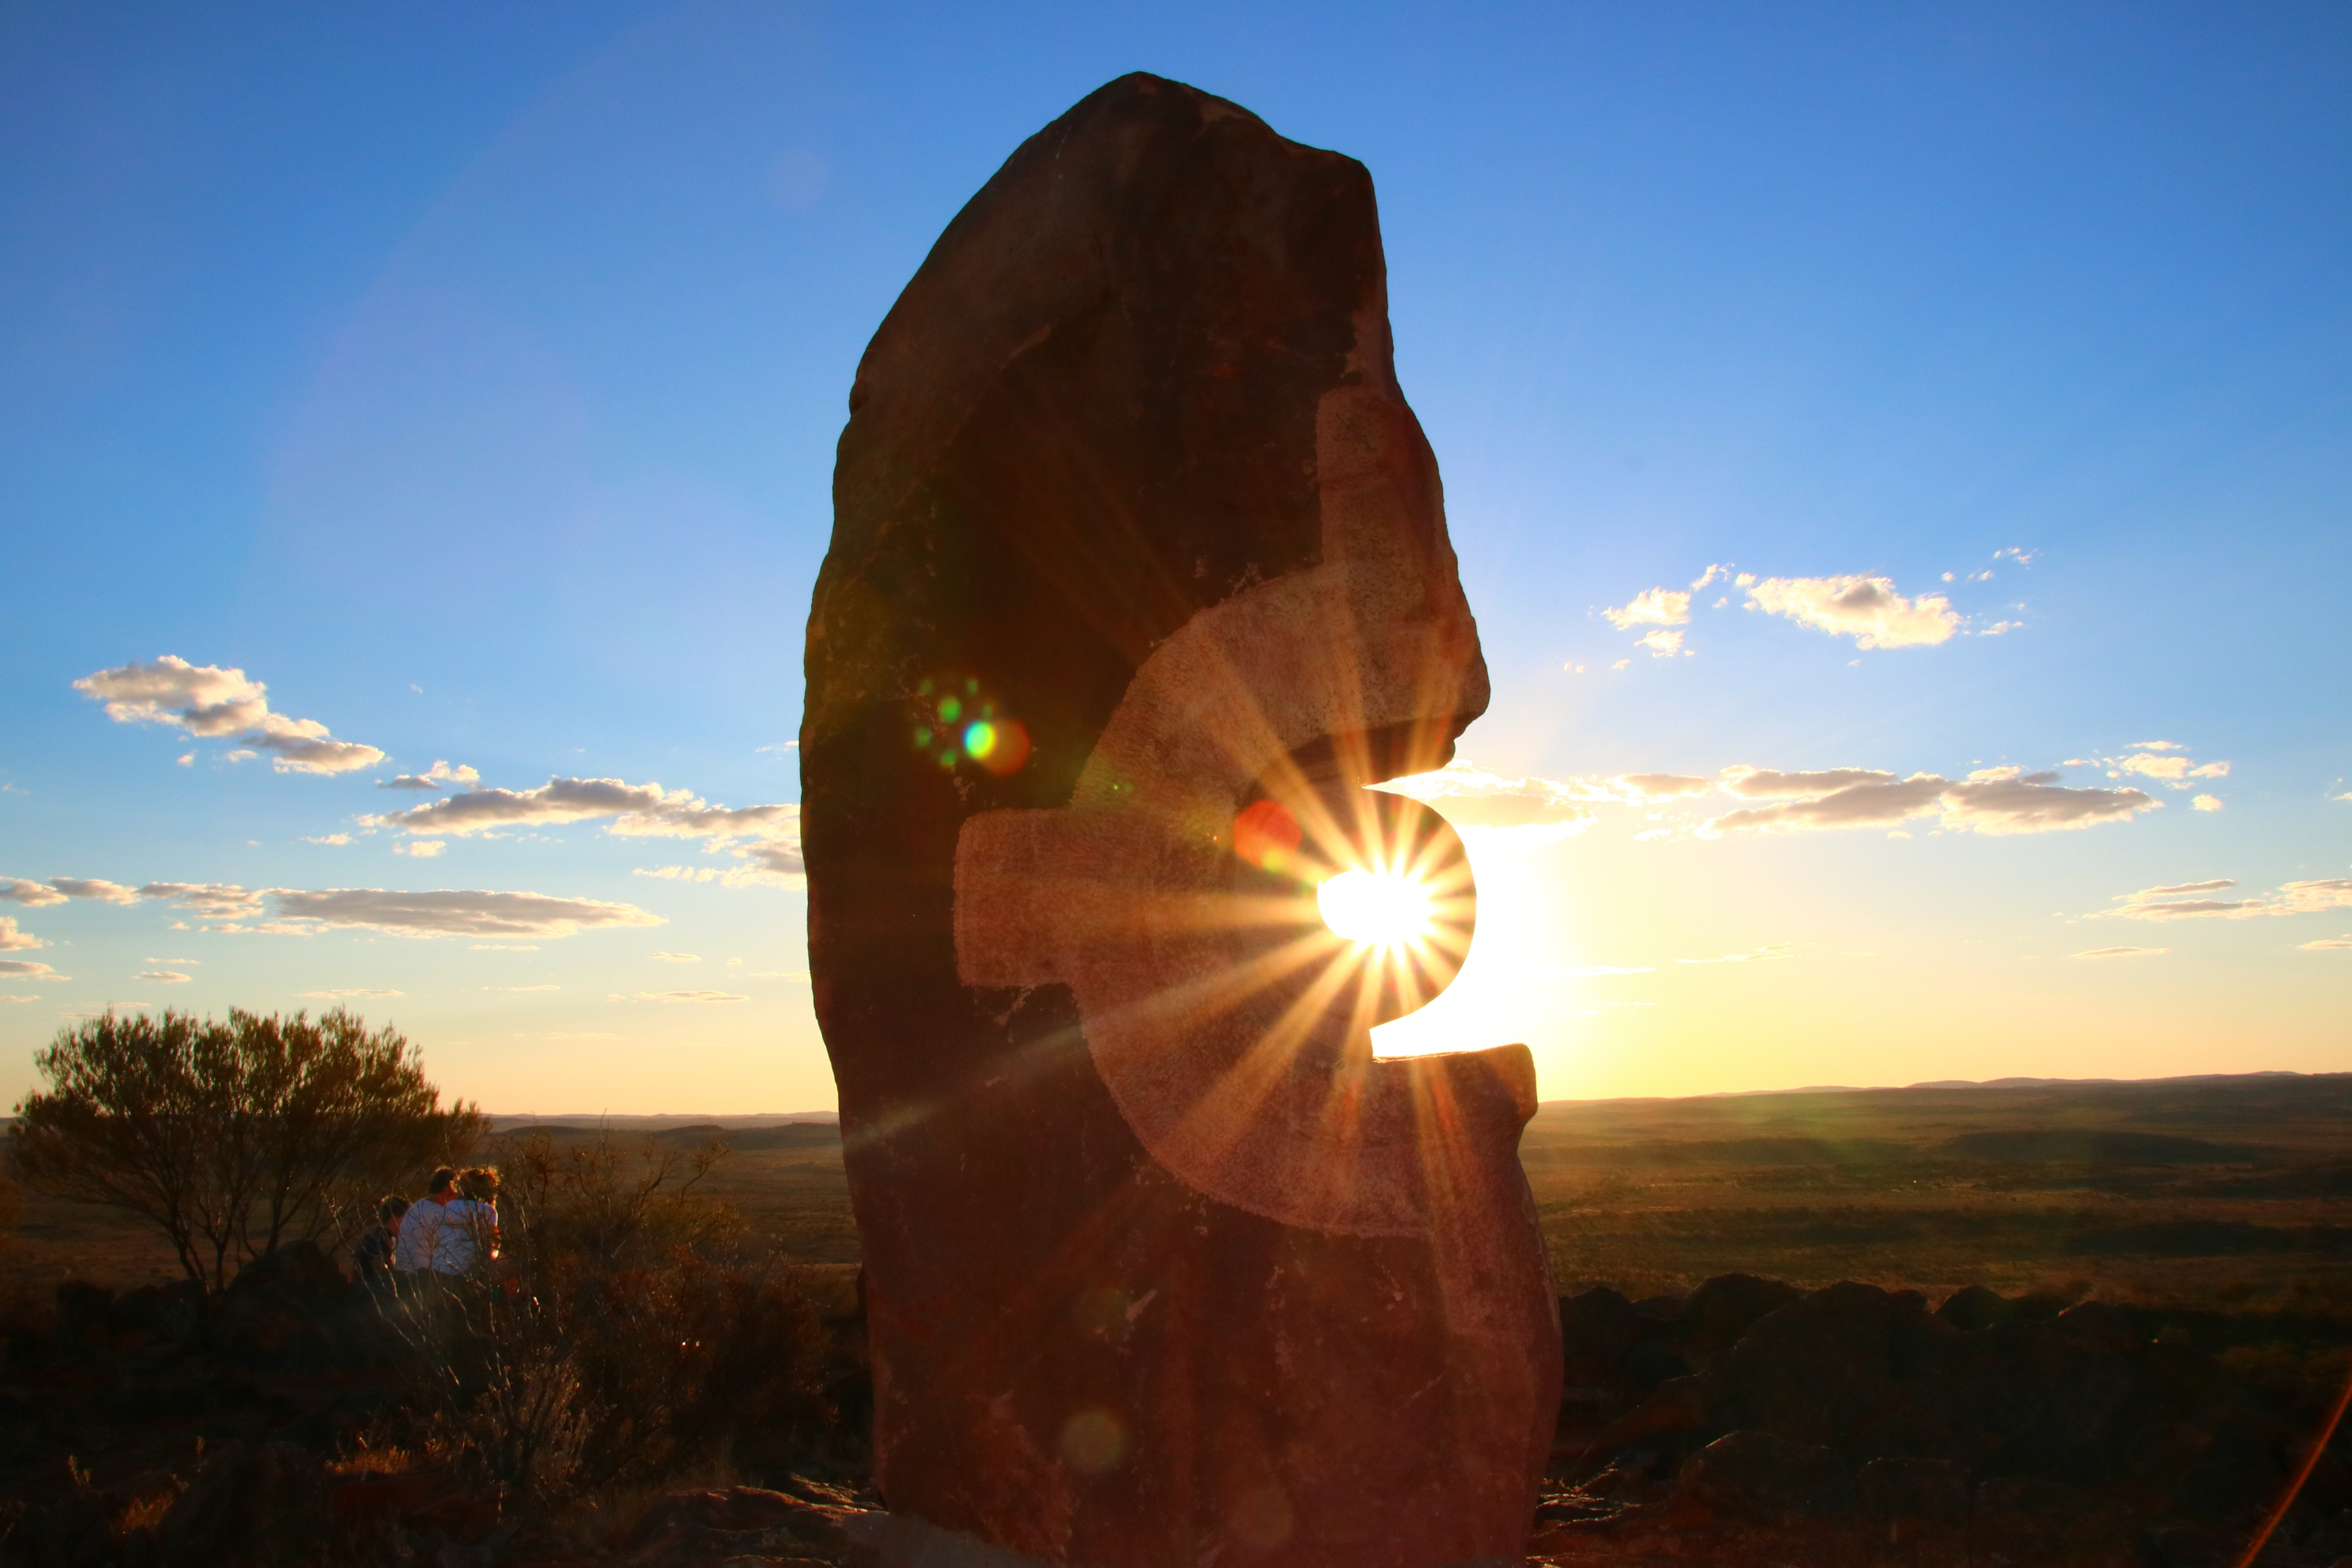 The ultimate outback town: Broken Hill